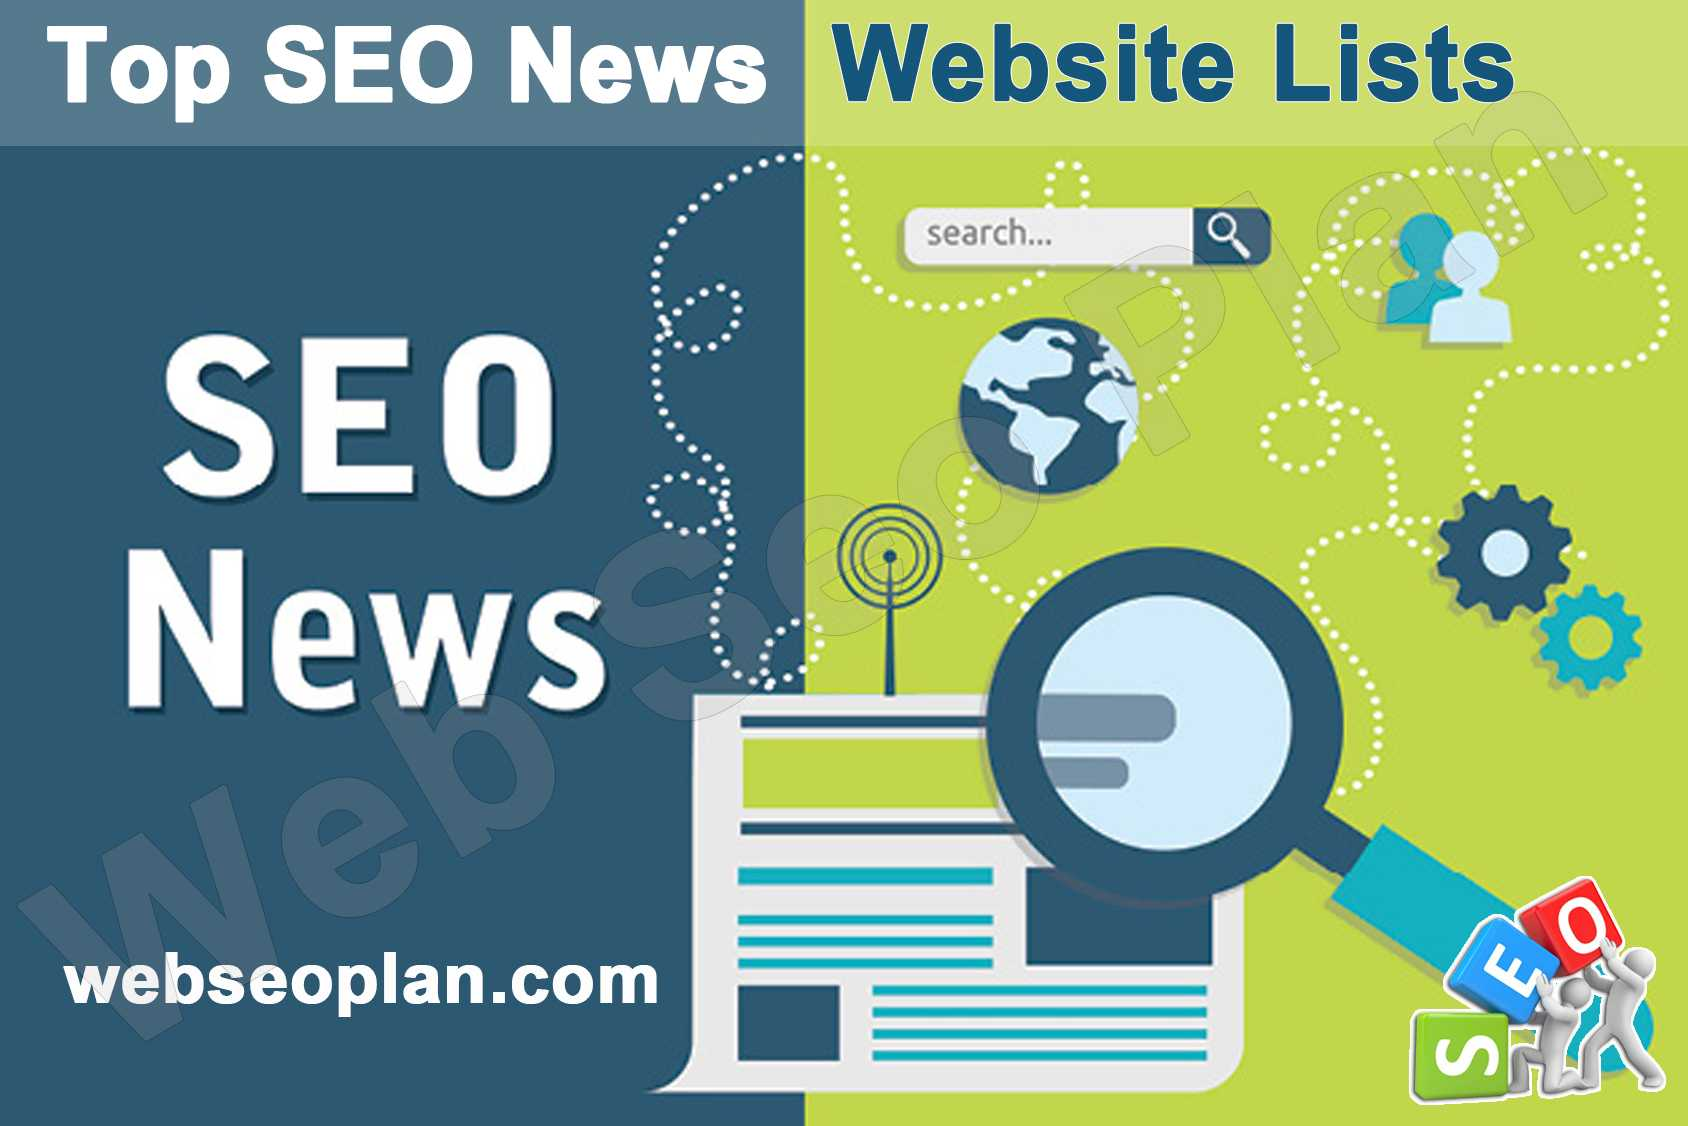 Top SEO News Site List